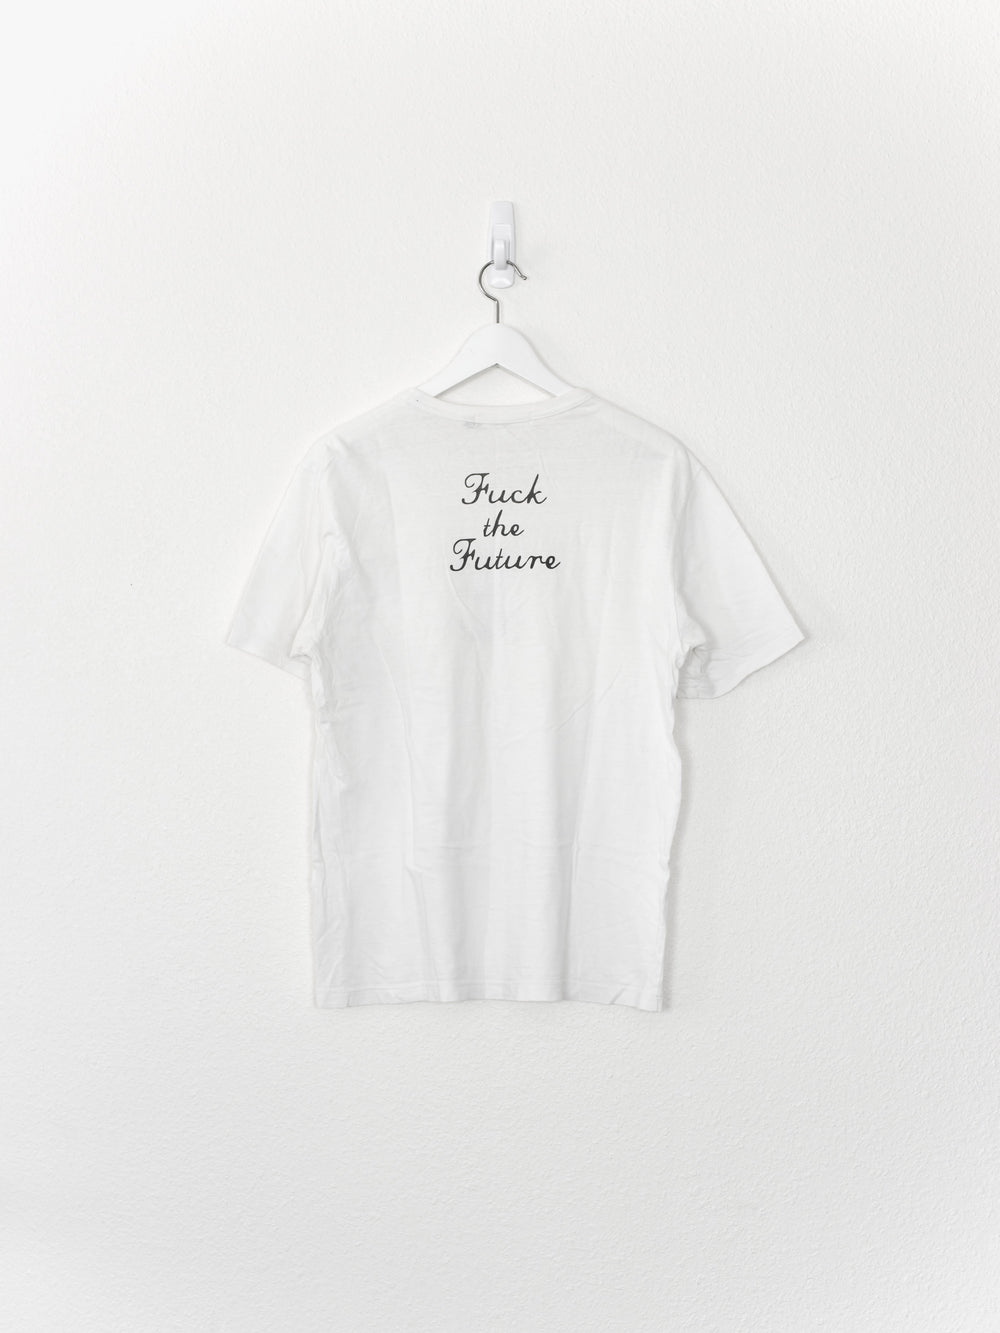 Undercover SS12 Fuck the Past Fuck the Future Tee